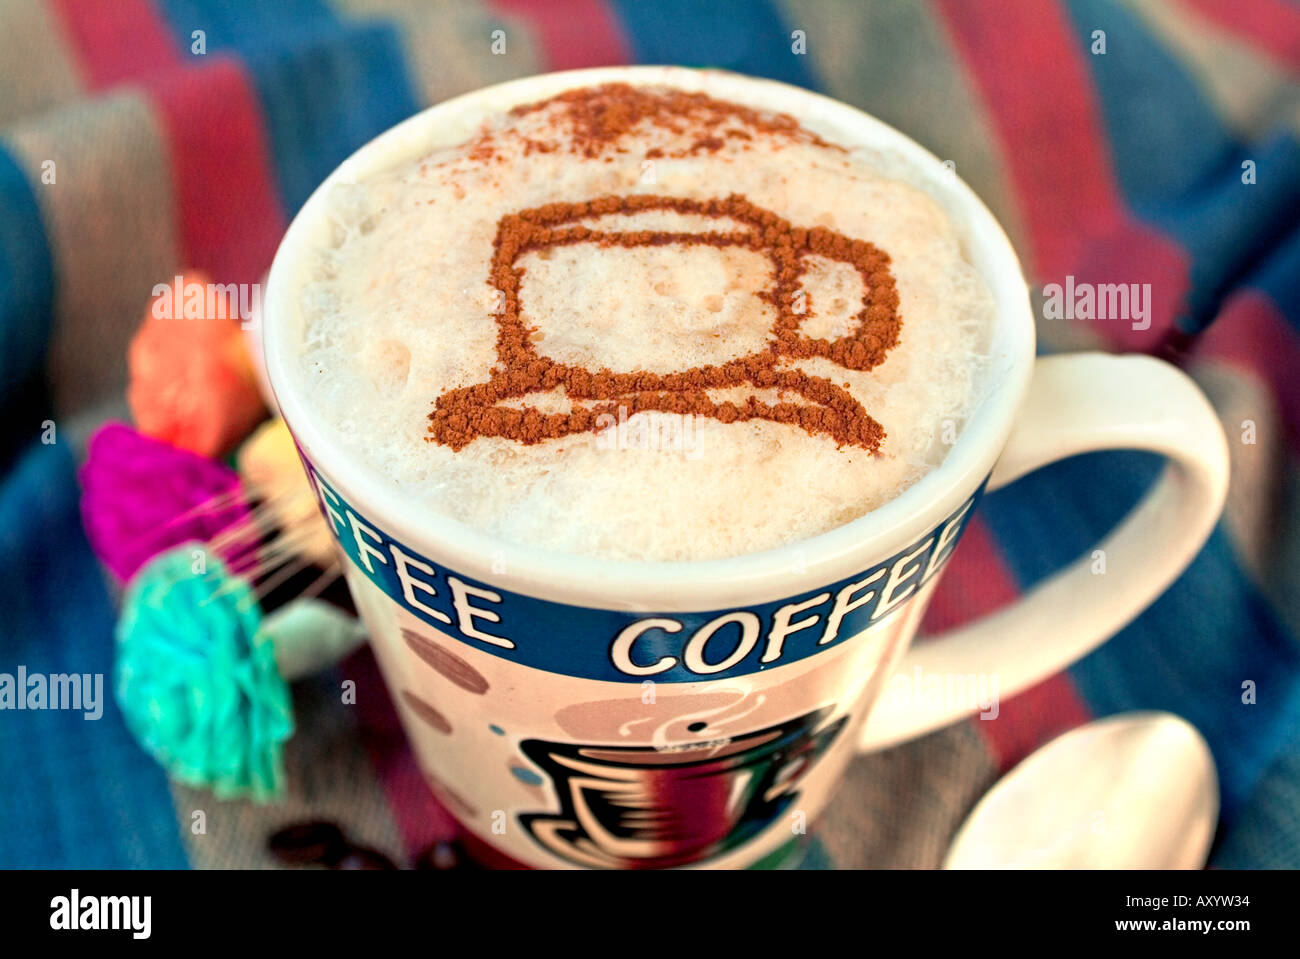 05159480f15 Latte with coffee cup design made of cinnamon on top of froth - Stock Image